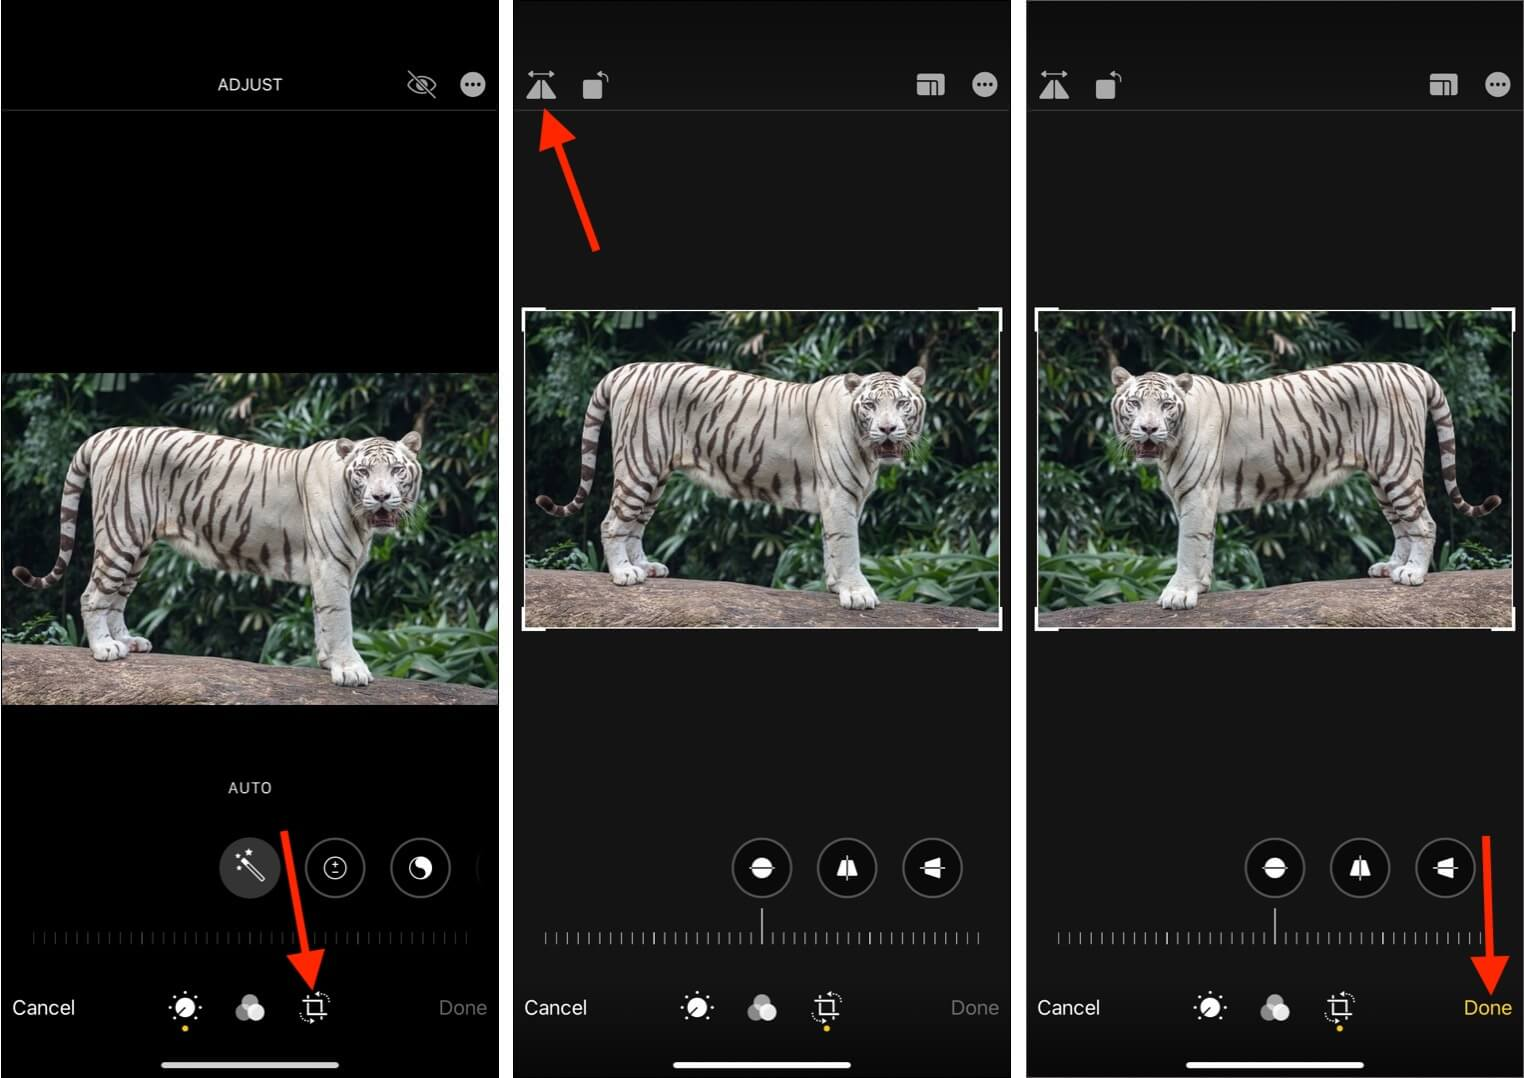 How to flip an image on iPhone or iPad using Photos app